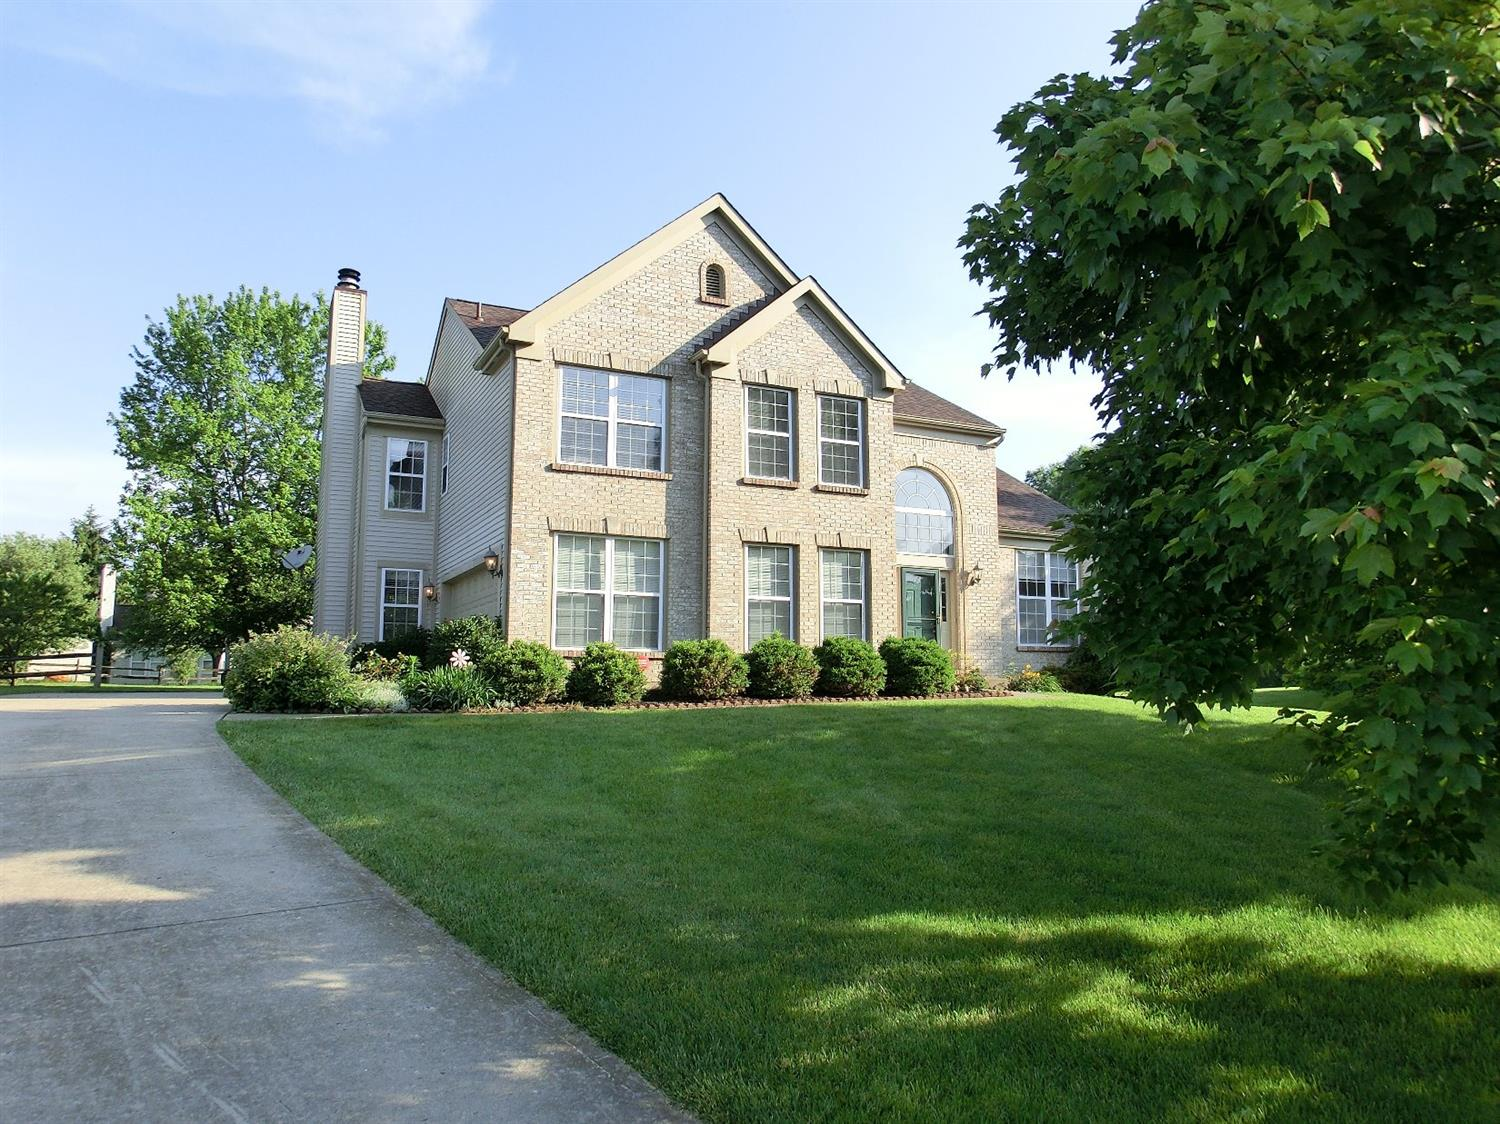 6093 Olde Gate Ct, Day Heights, OH - USA (photo 1)